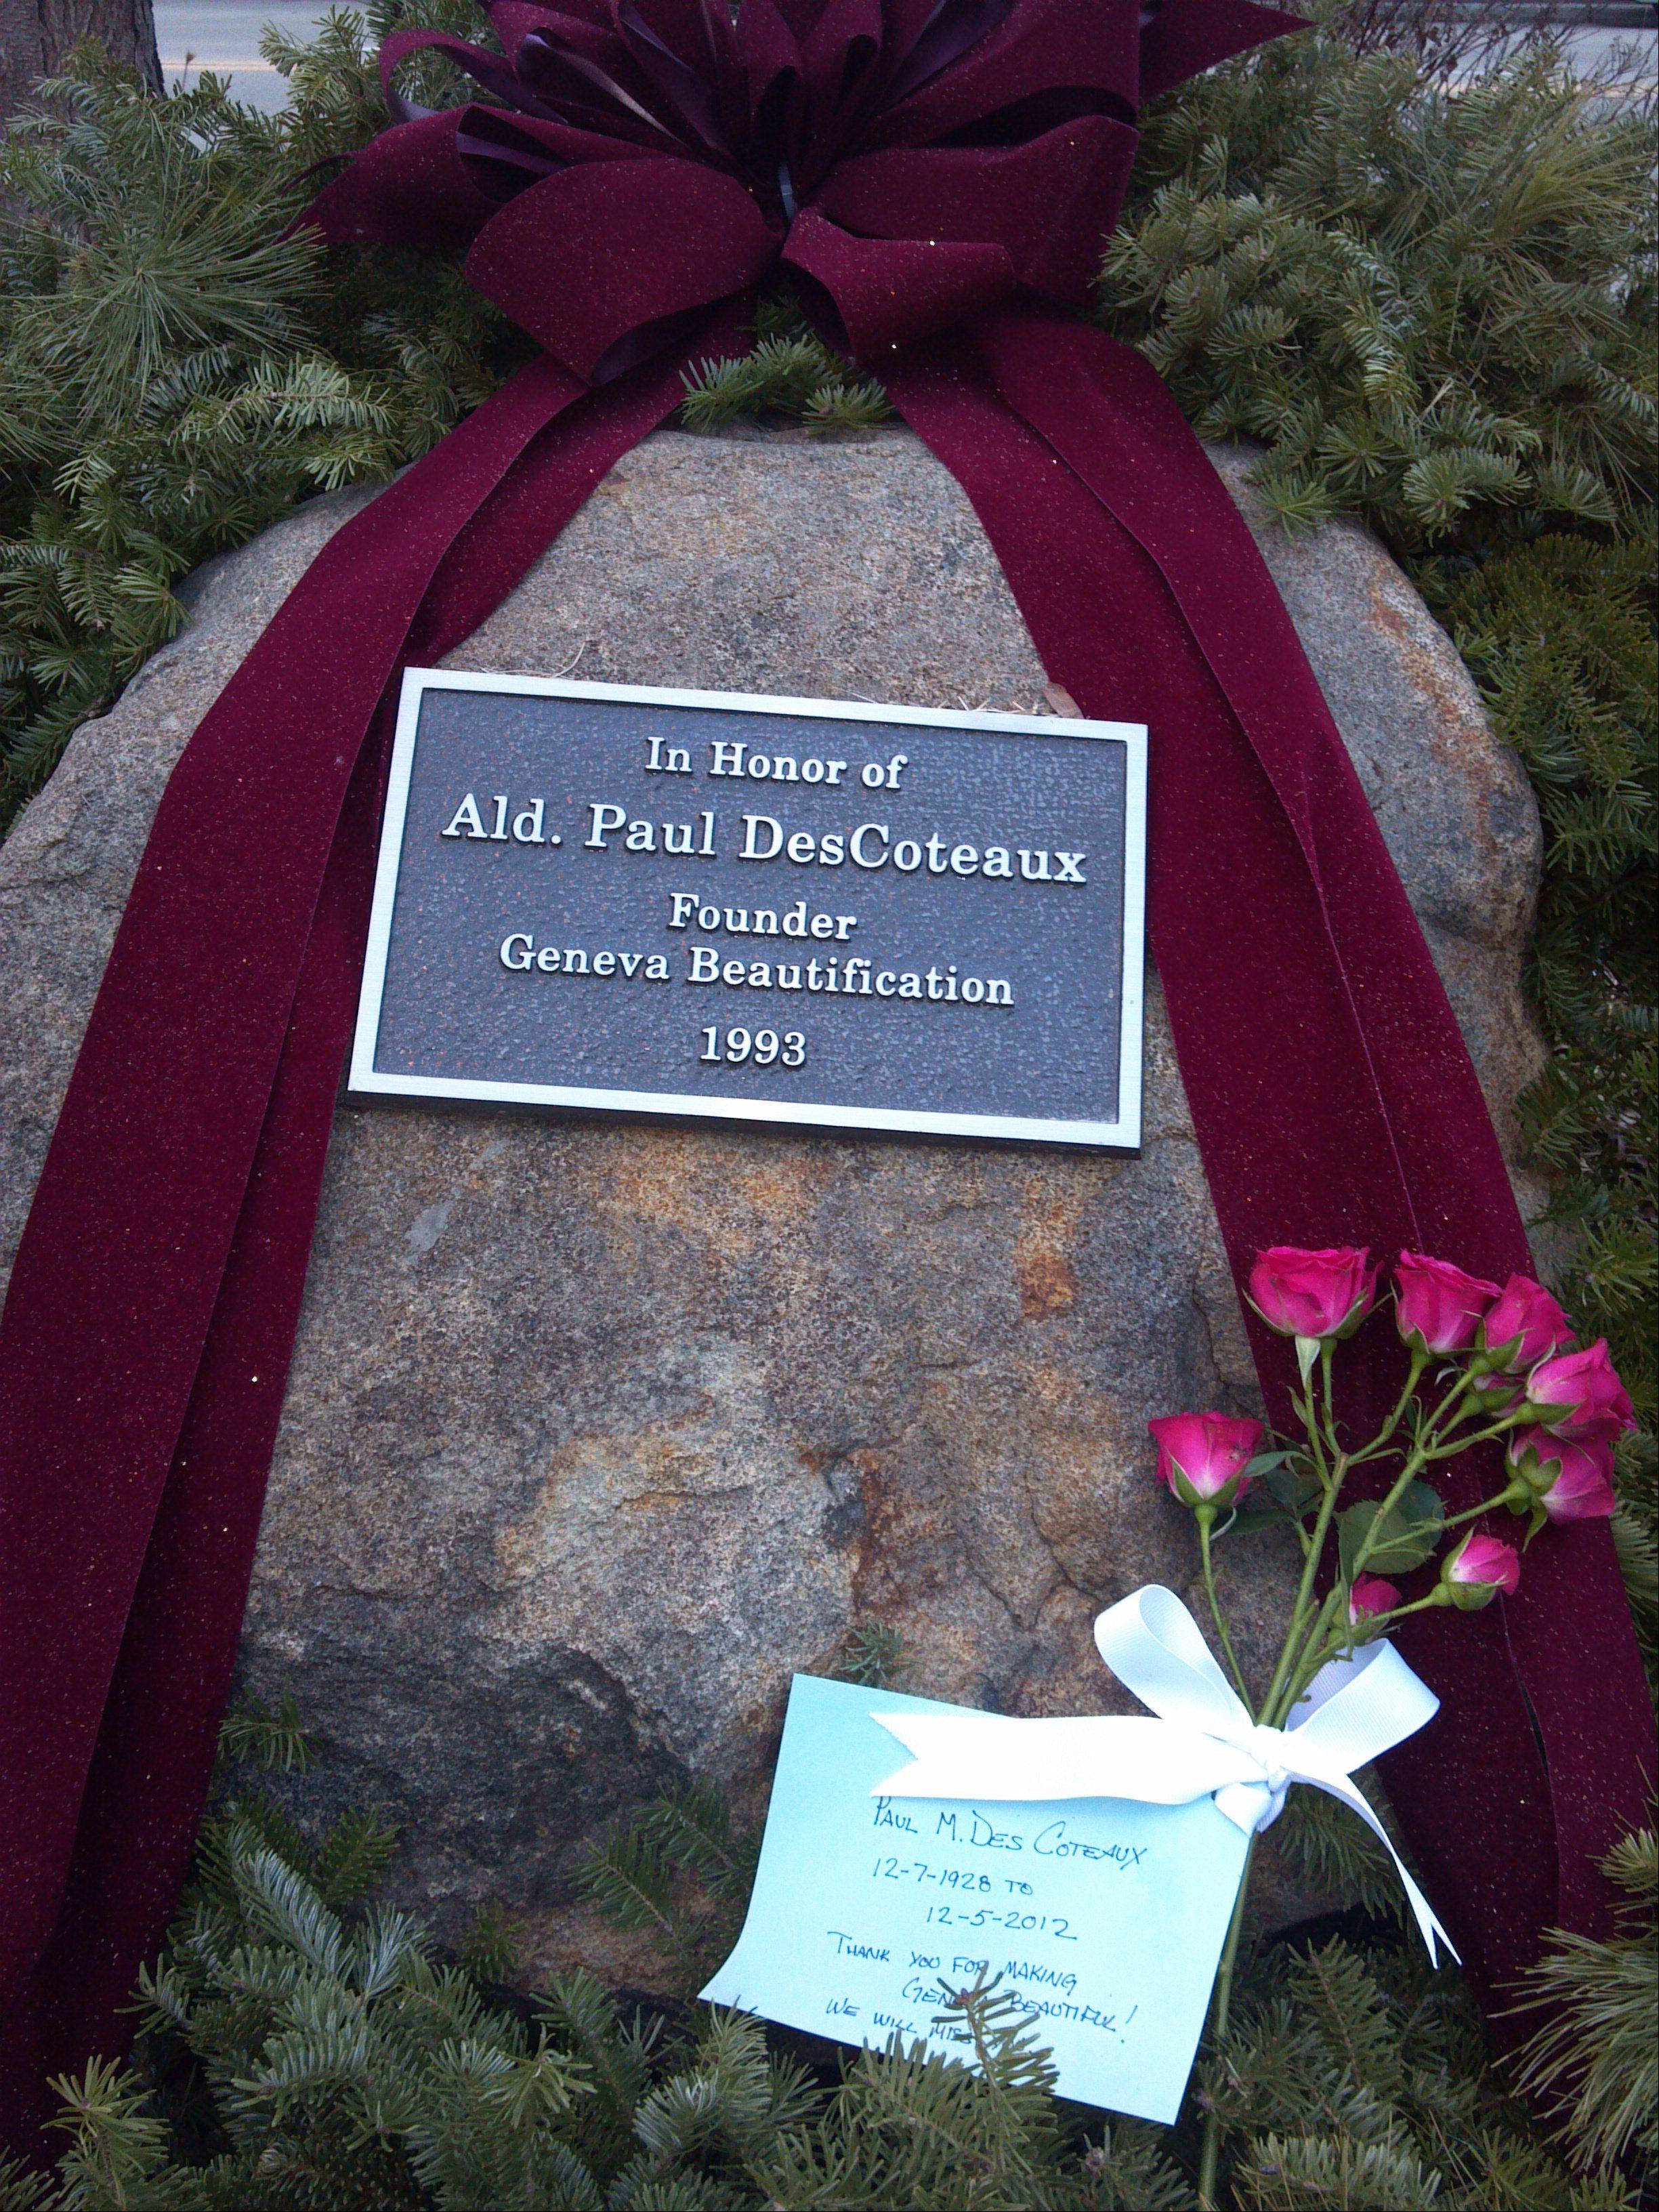 Someone placed a card and flowers on a rock outside of the Geneva downtown post office on Third Street in memory of Paul DesCoteaux, a former alderman who spearheaded downtown beautification efforts. DesCoteaux died this week at the age of 83.